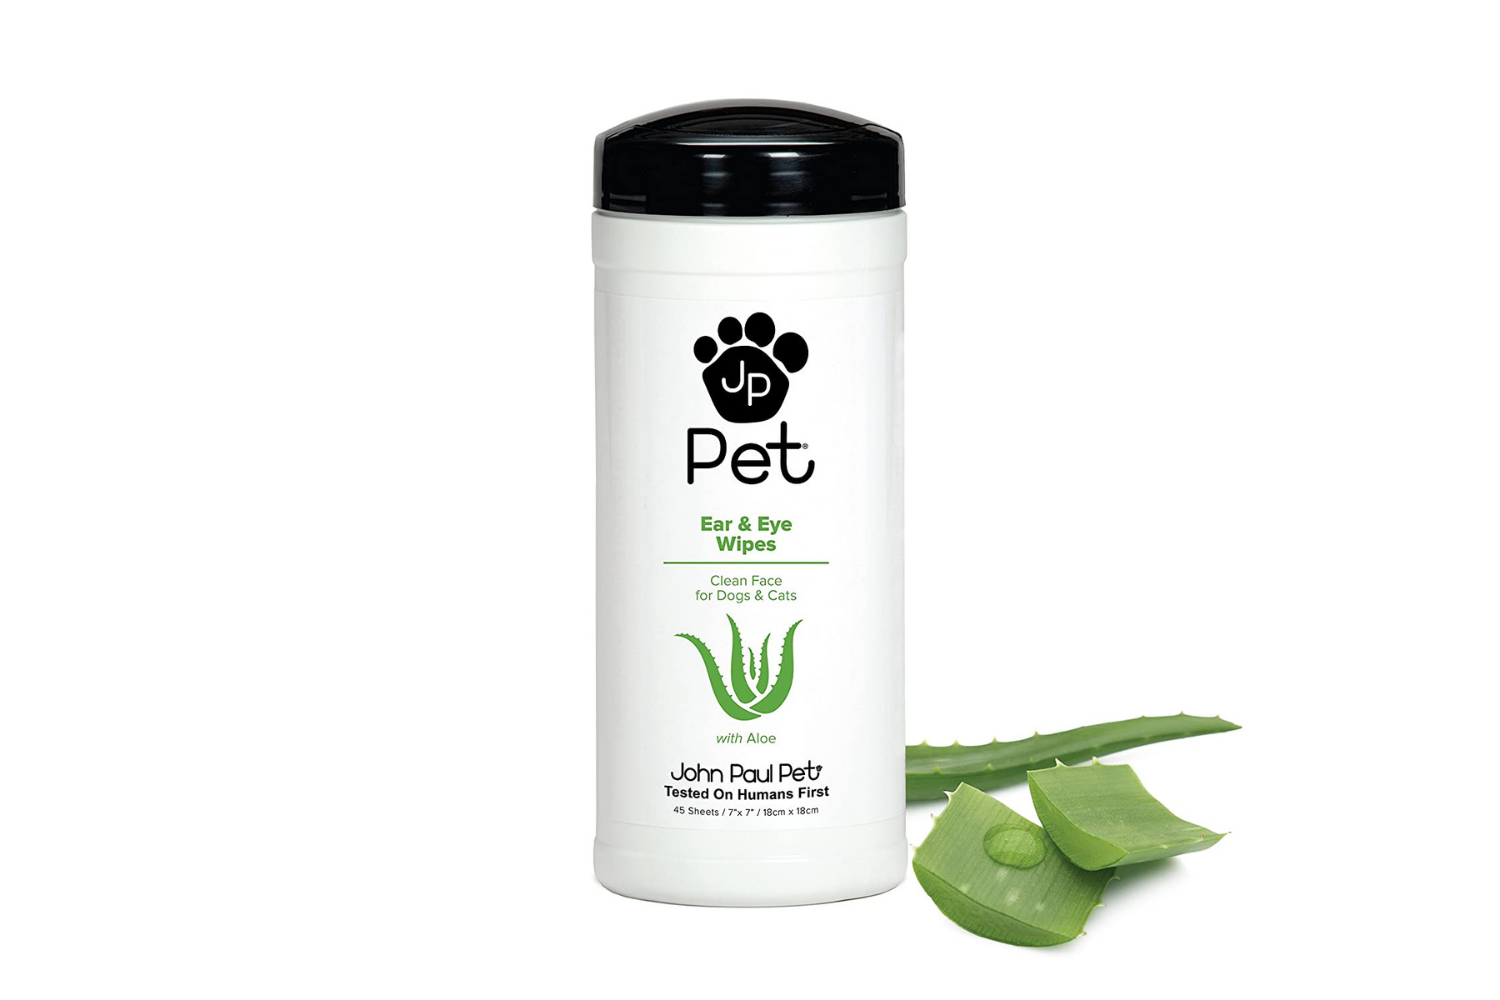 pet ear and eye wipes